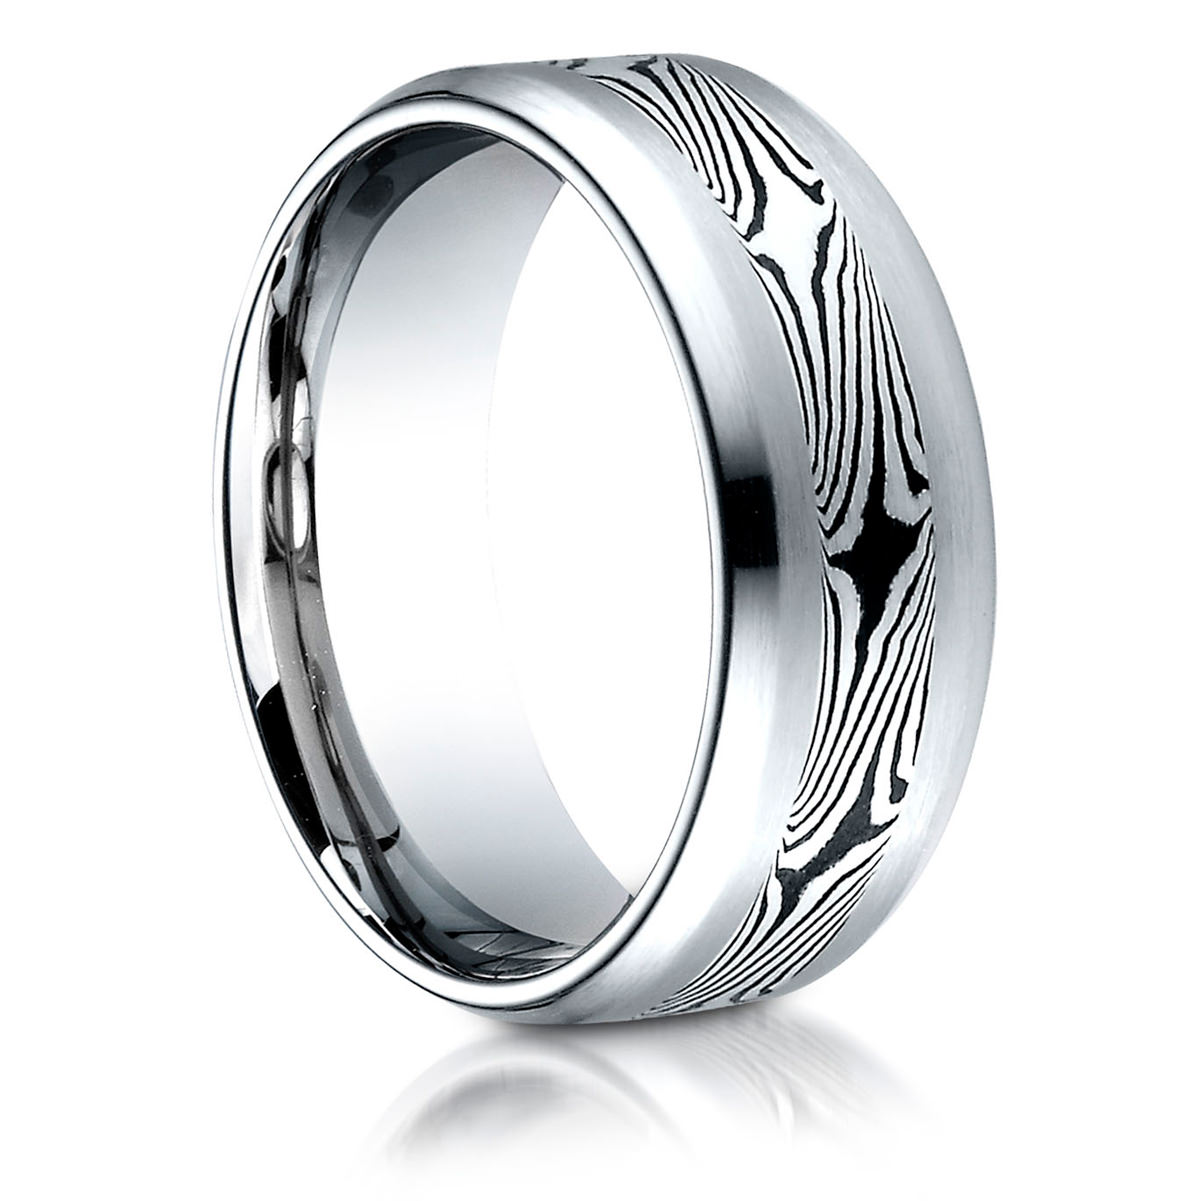 silver moon gane rings striped copper product full mokume ring